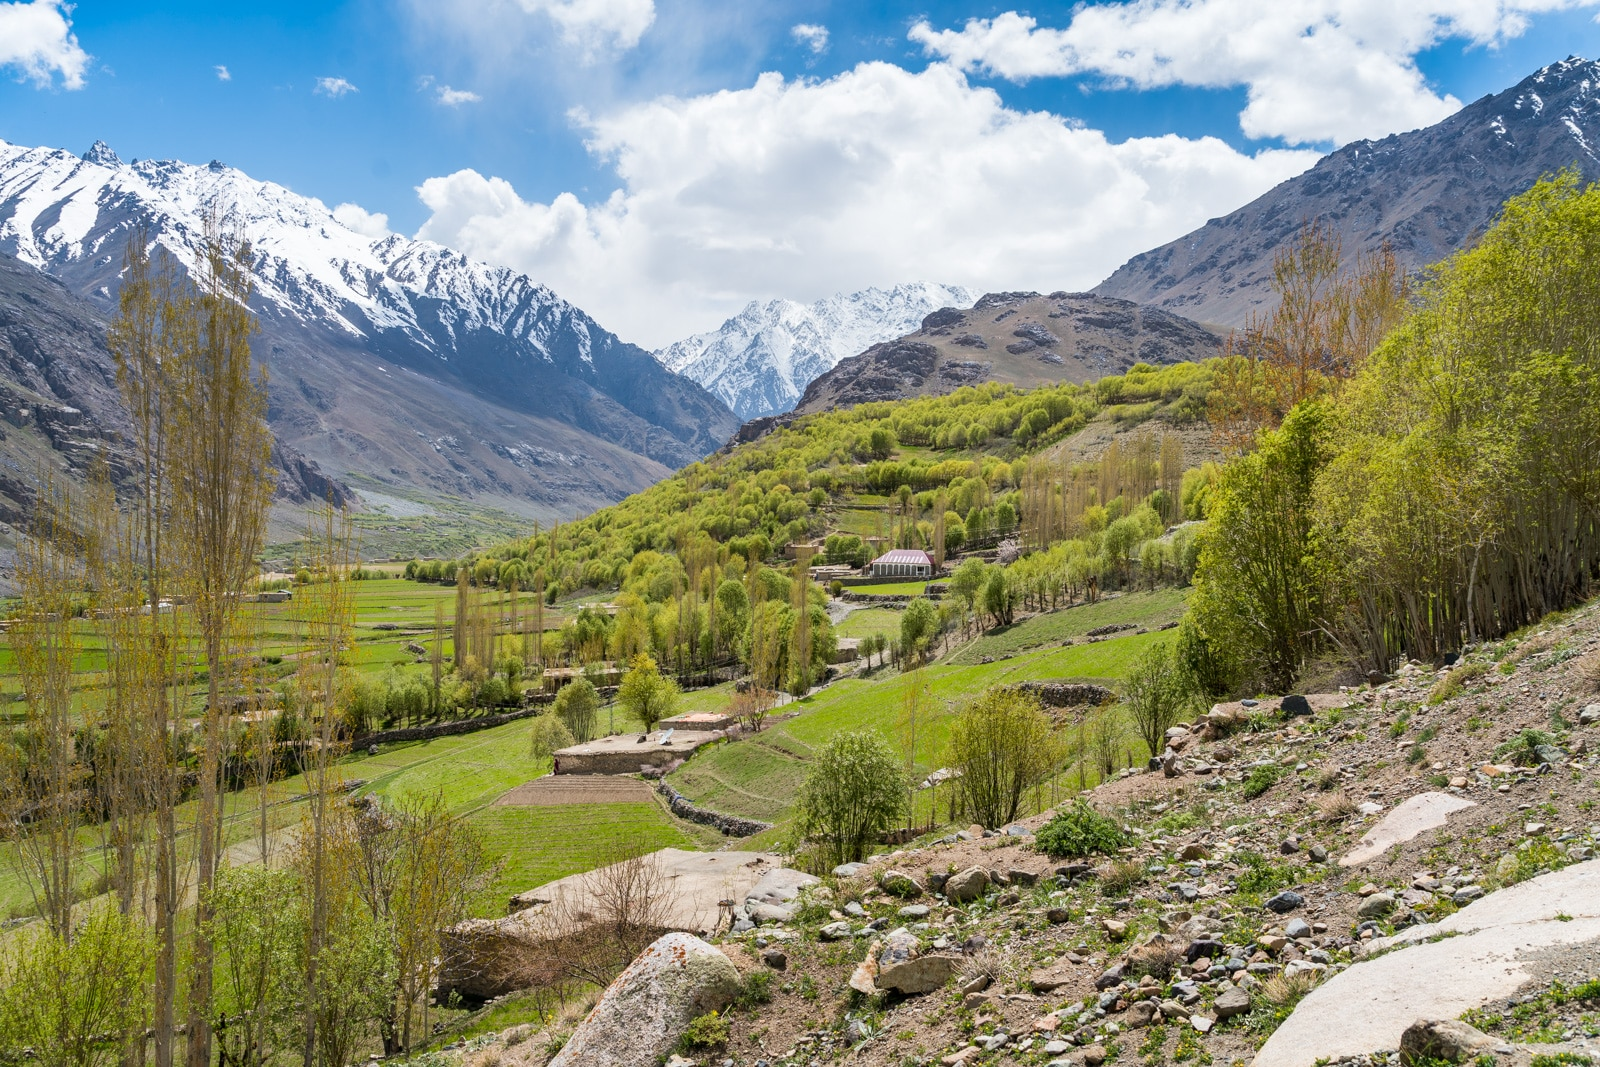 Phander Valley travel guide - Teru village in Gilgit Baltistan, Pakistan - Lost With Purpose travel blog